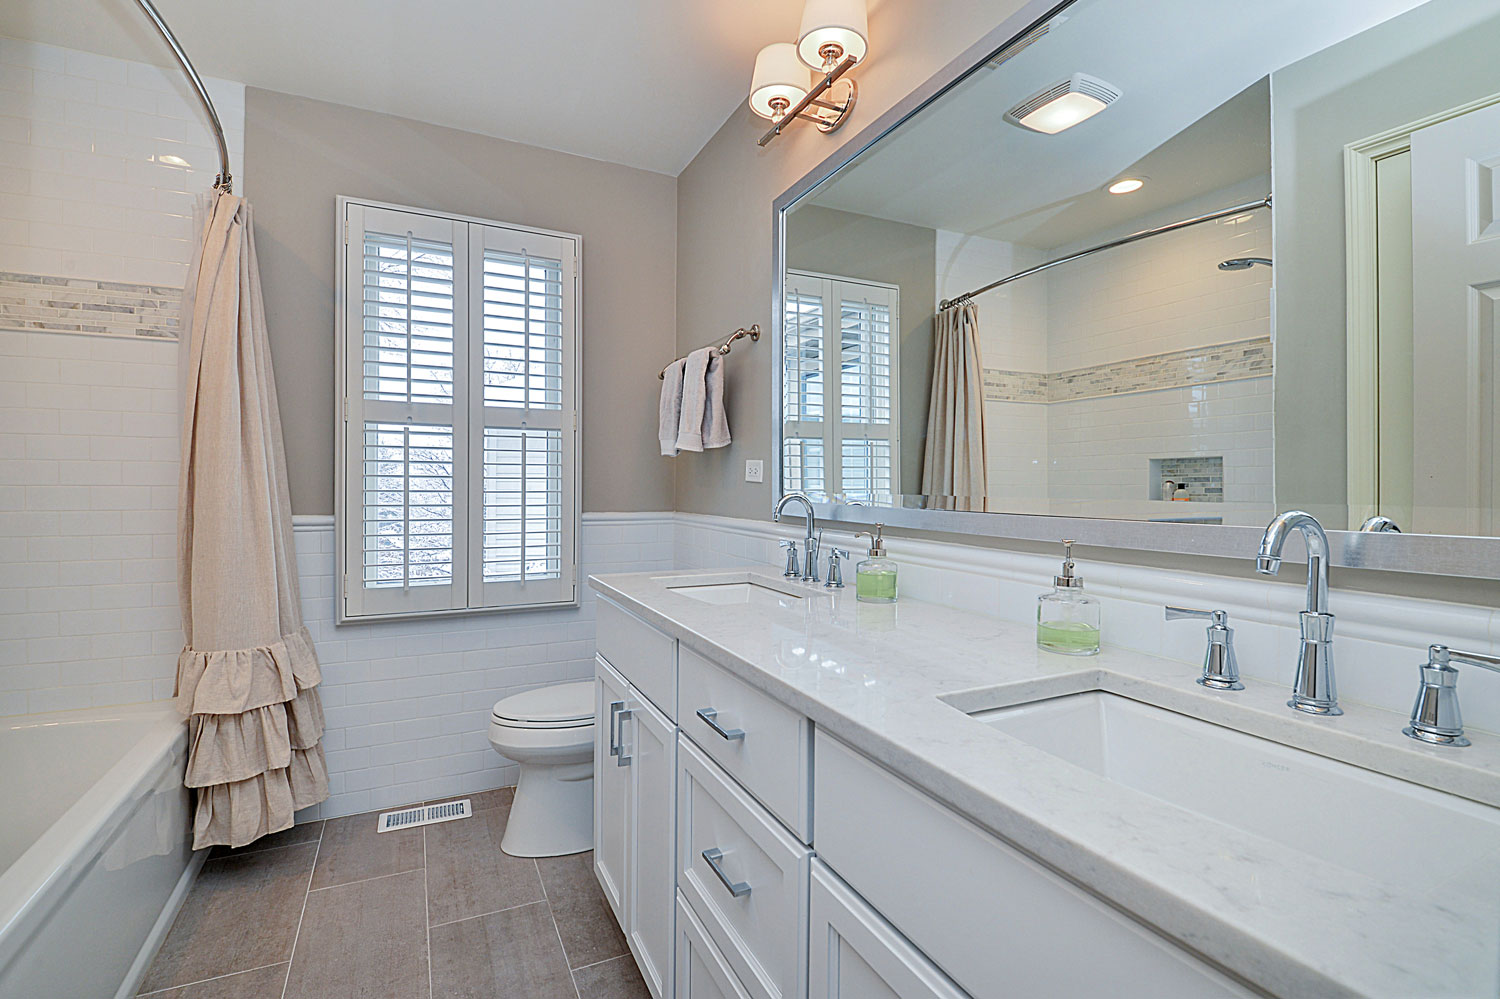 Carl susan 39 s hall bathroom remodel pictures home for Residential remodeling